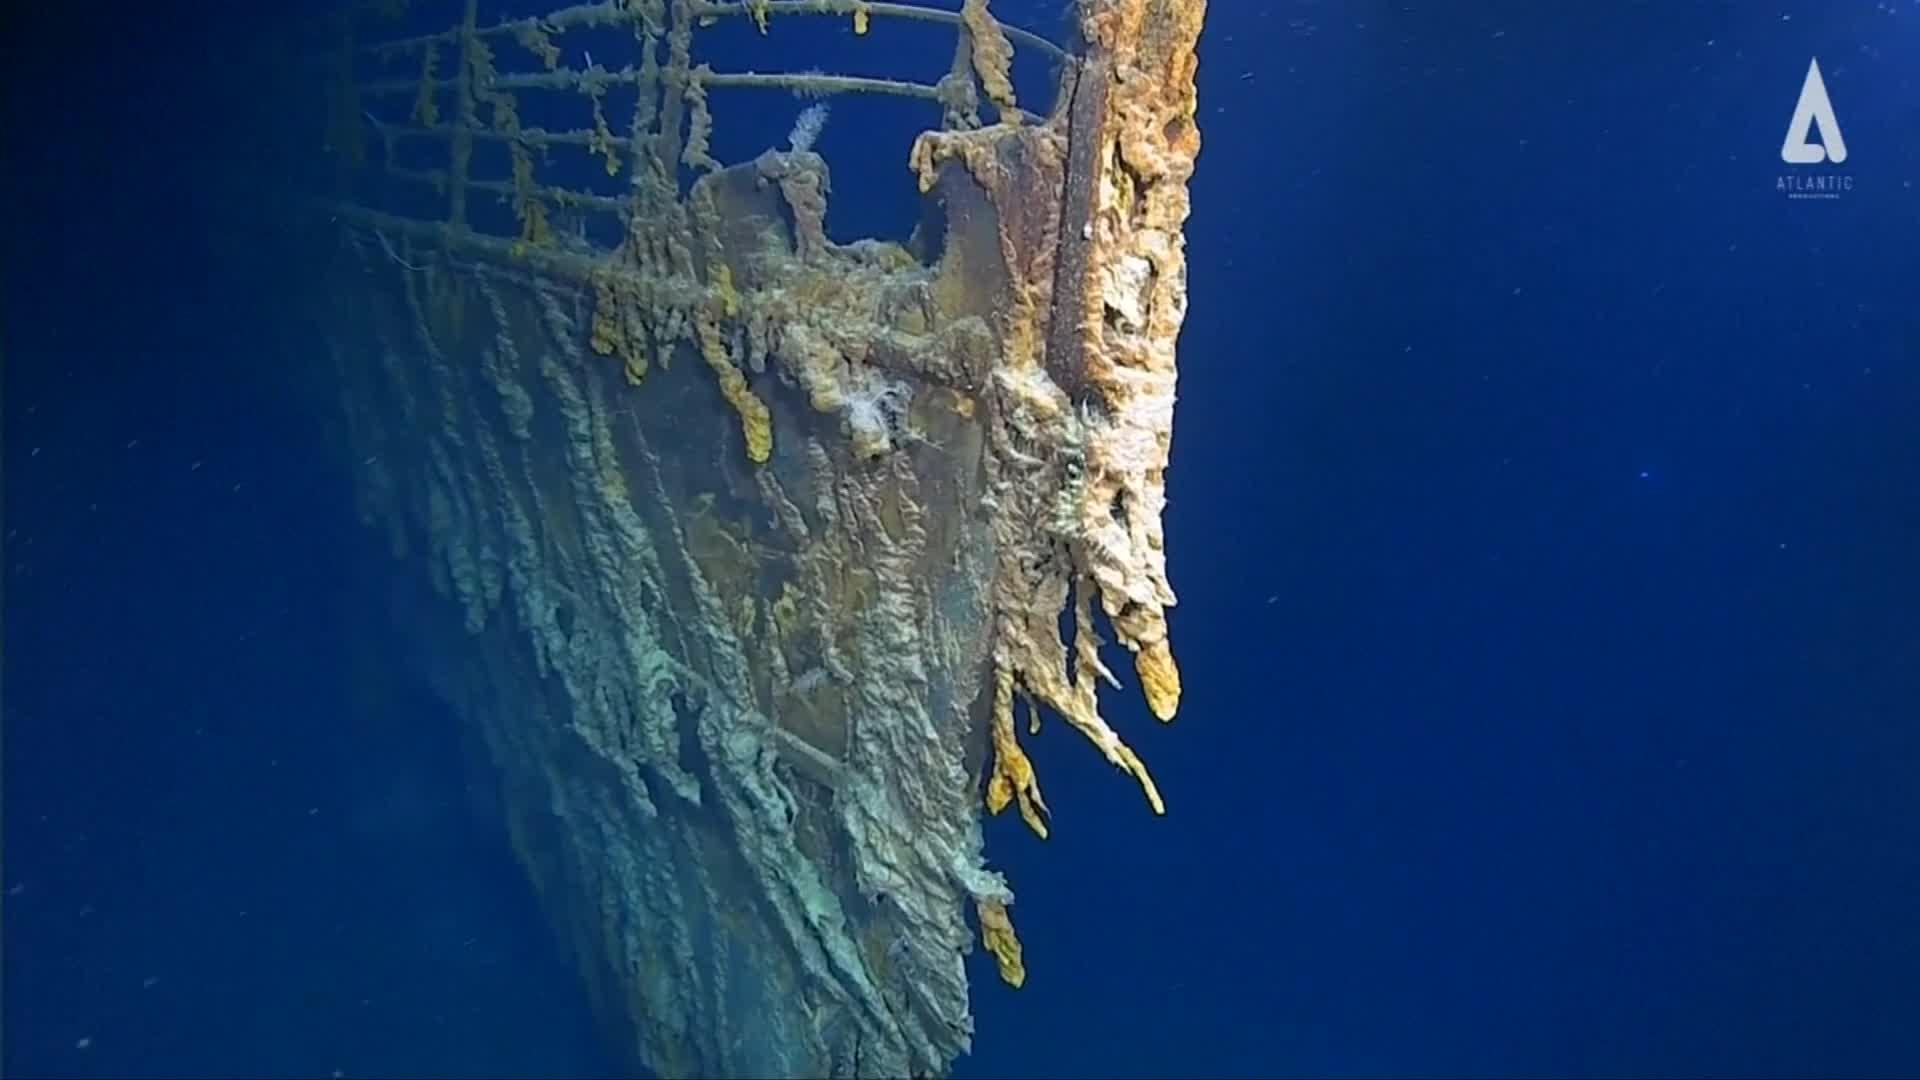 New 4K images of Titanic released after first manned dive in